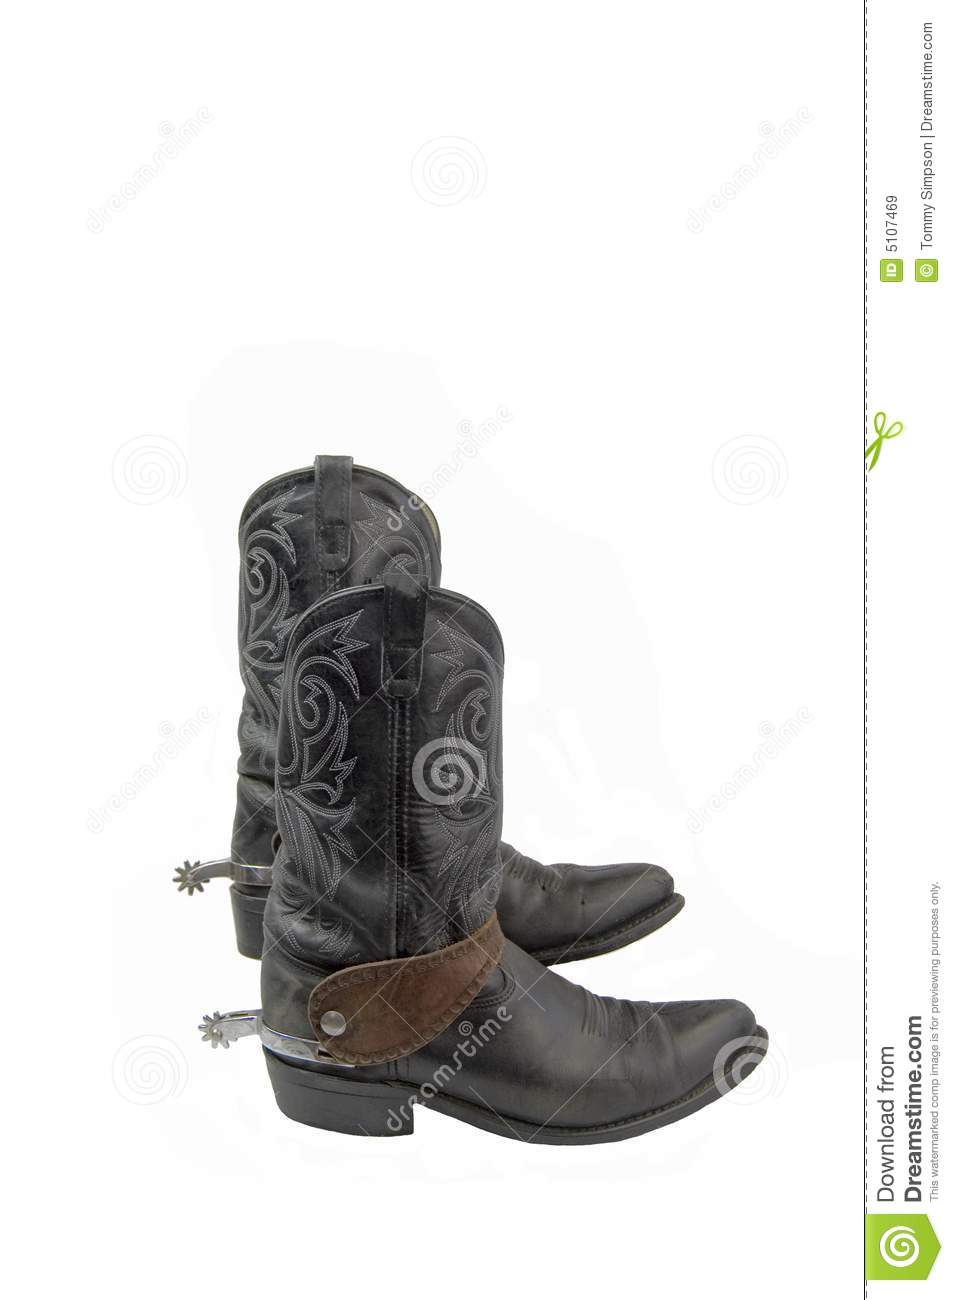 Related Keywords & Suggestions for Cowboy Boot With Spurs Clipart.